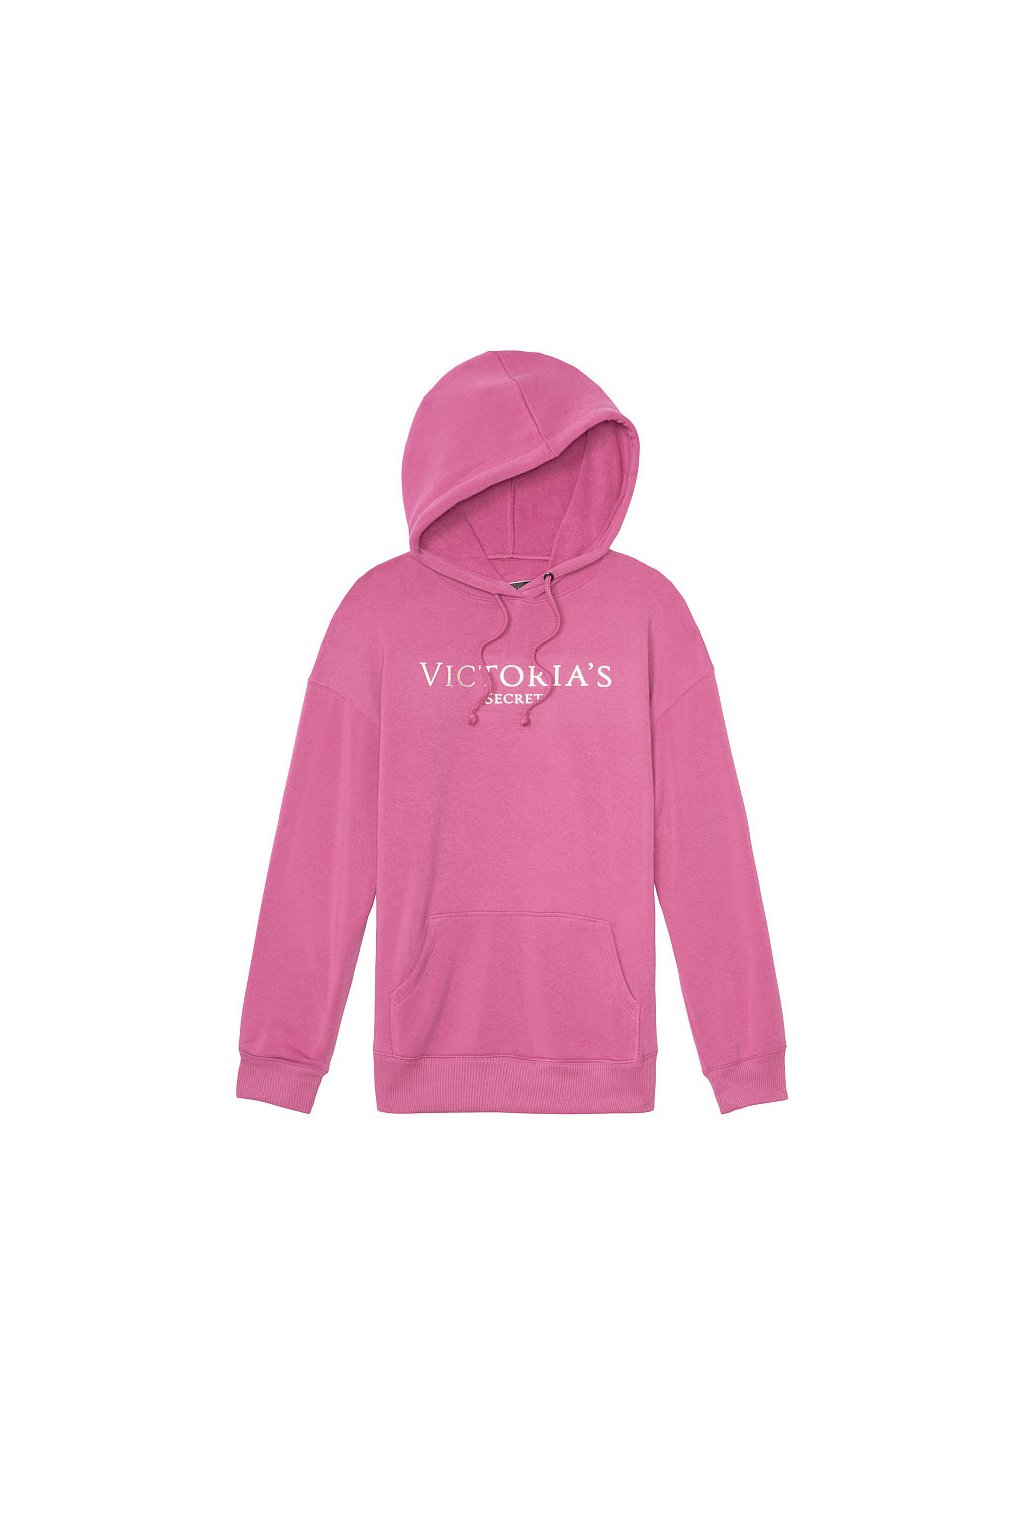 Victoria's Secret mikina s kapucí Fleece Pulover / Pink